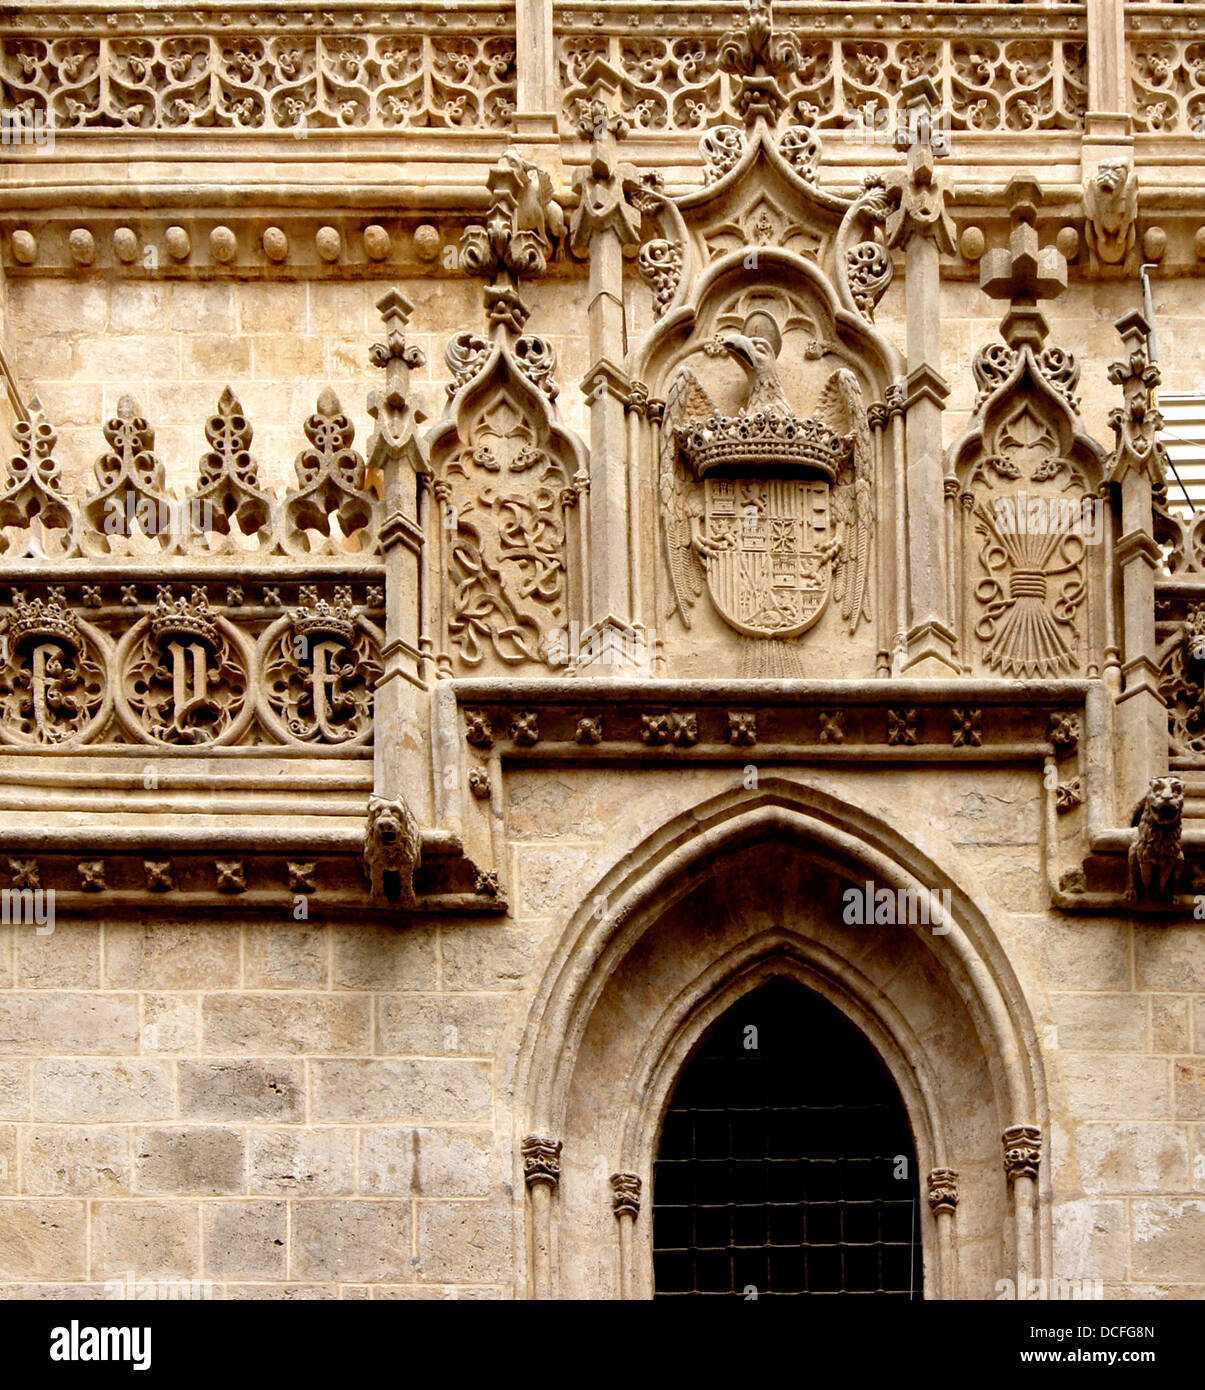 symbols and CoA of Ferdinand of Aragon and Isabella of Castile, (The catholic Kings) on a wall of the Capillar Real, - Stock Image